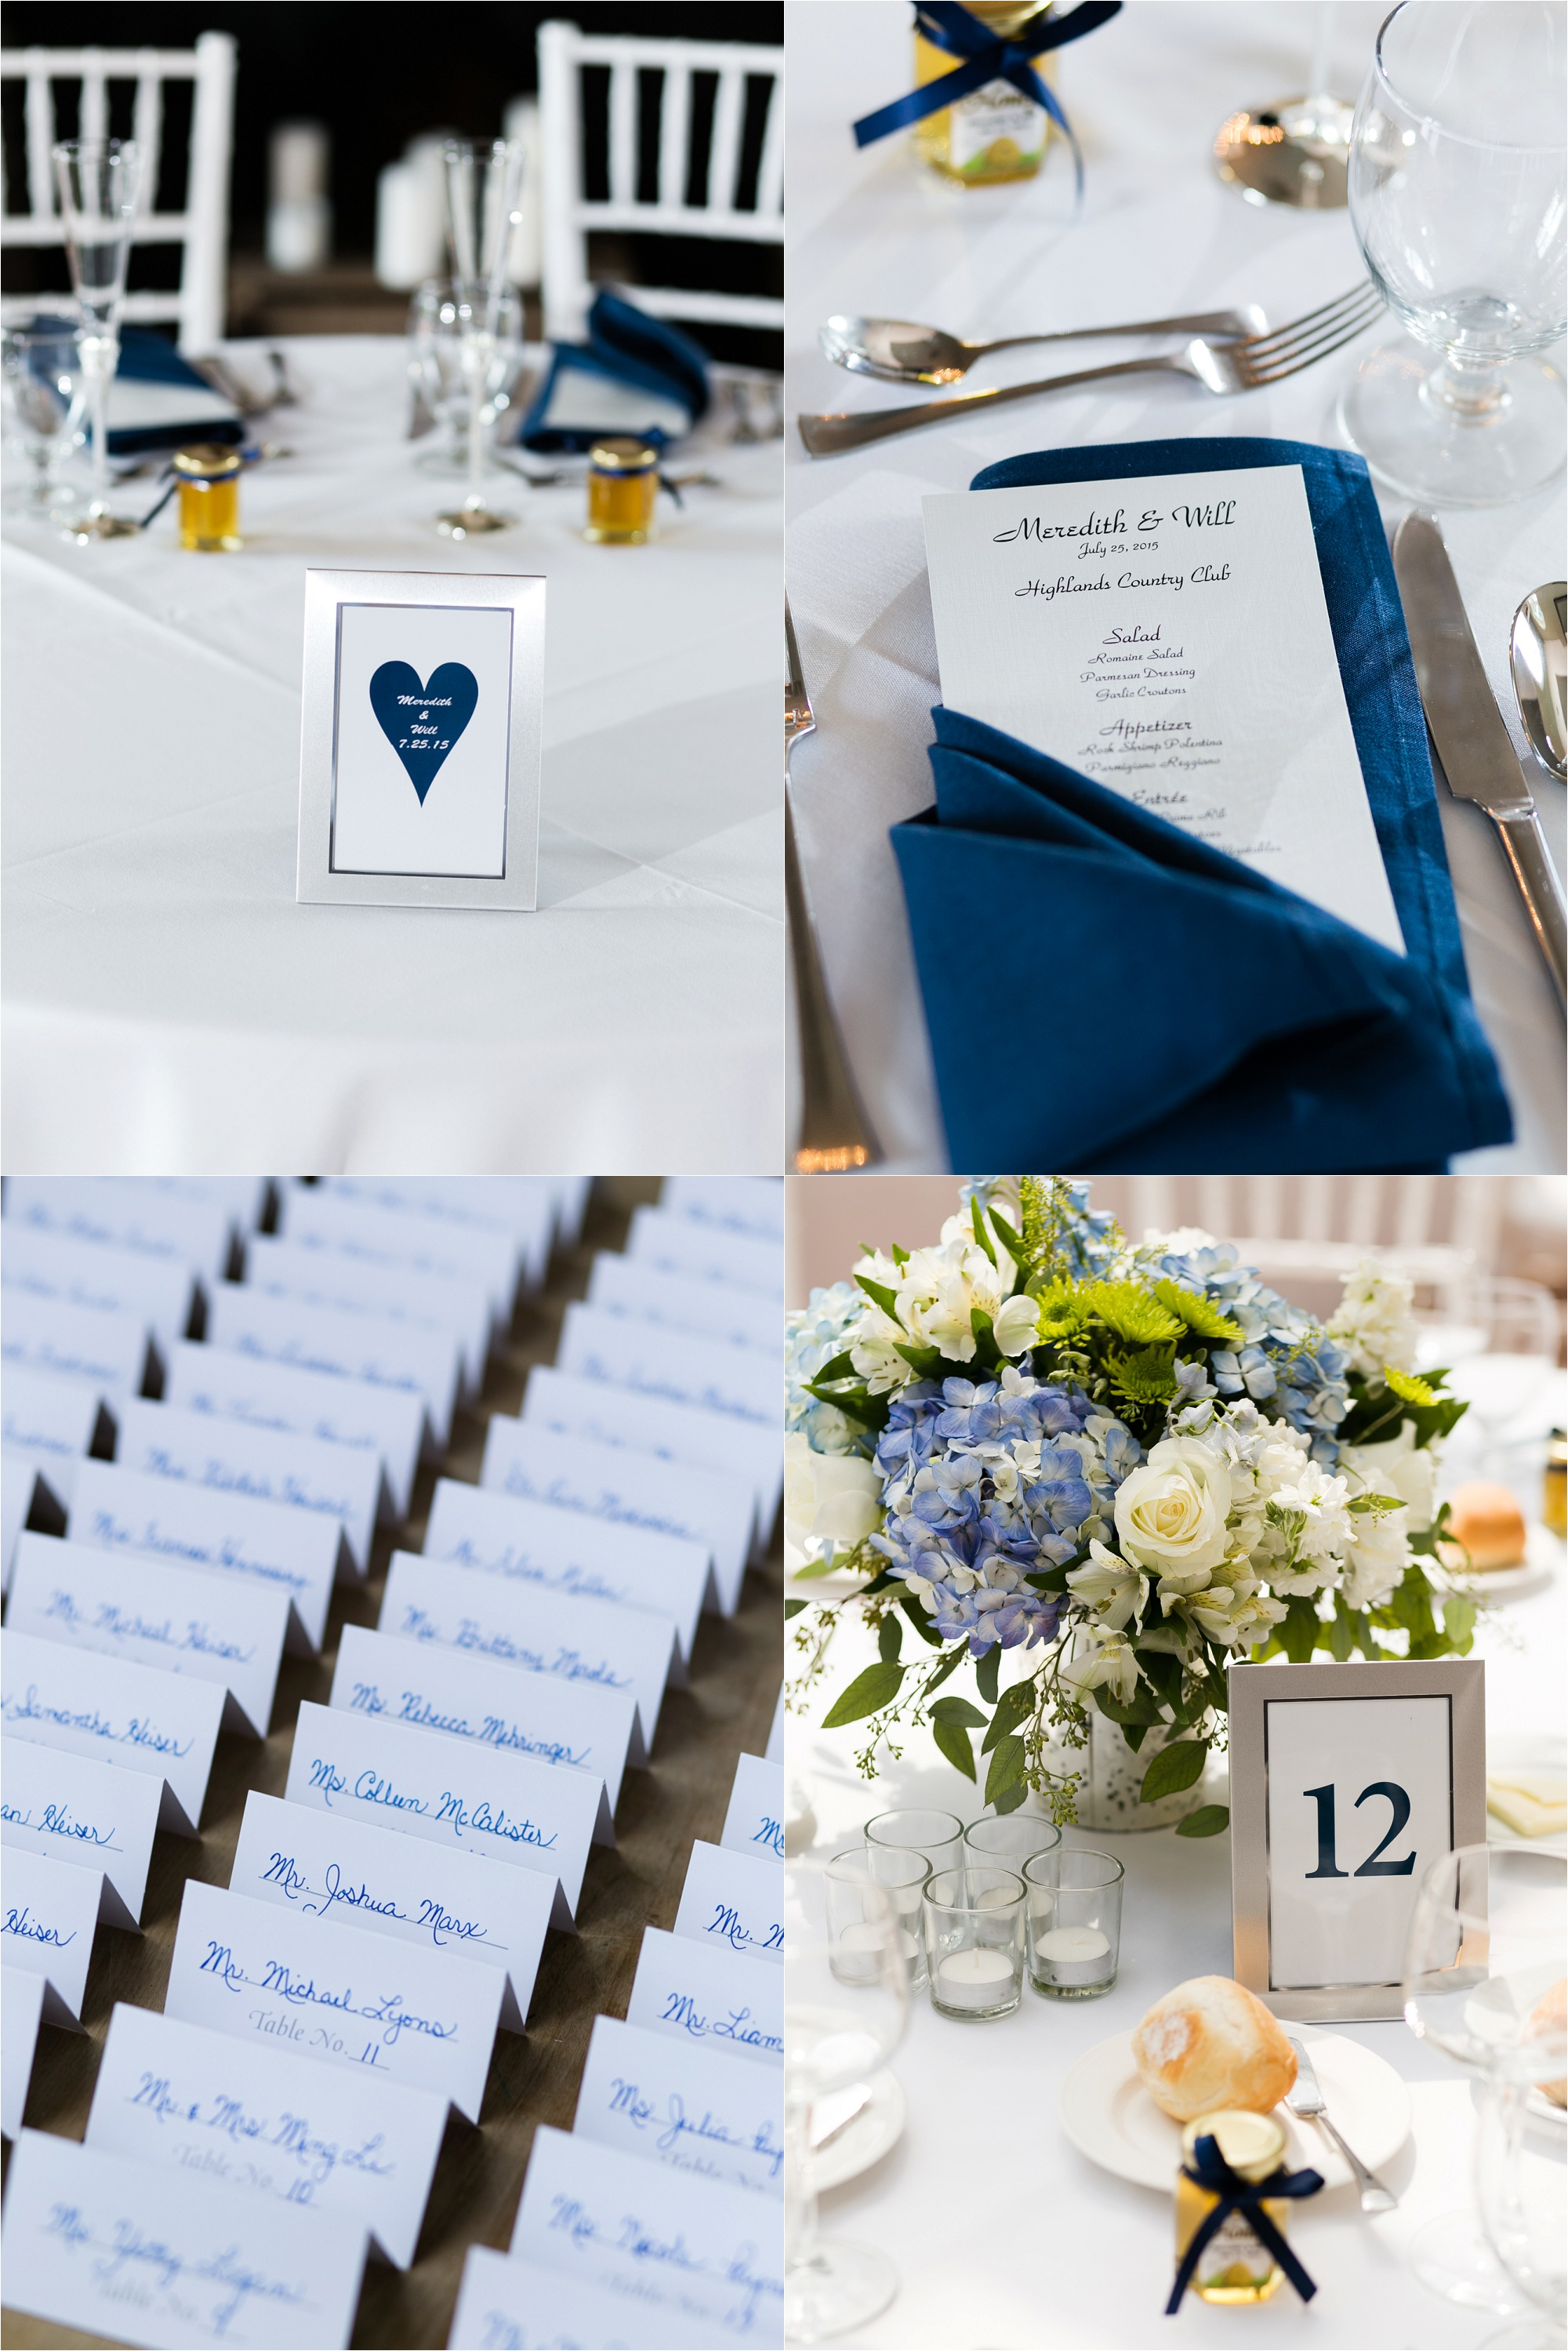 Photos of the reception details